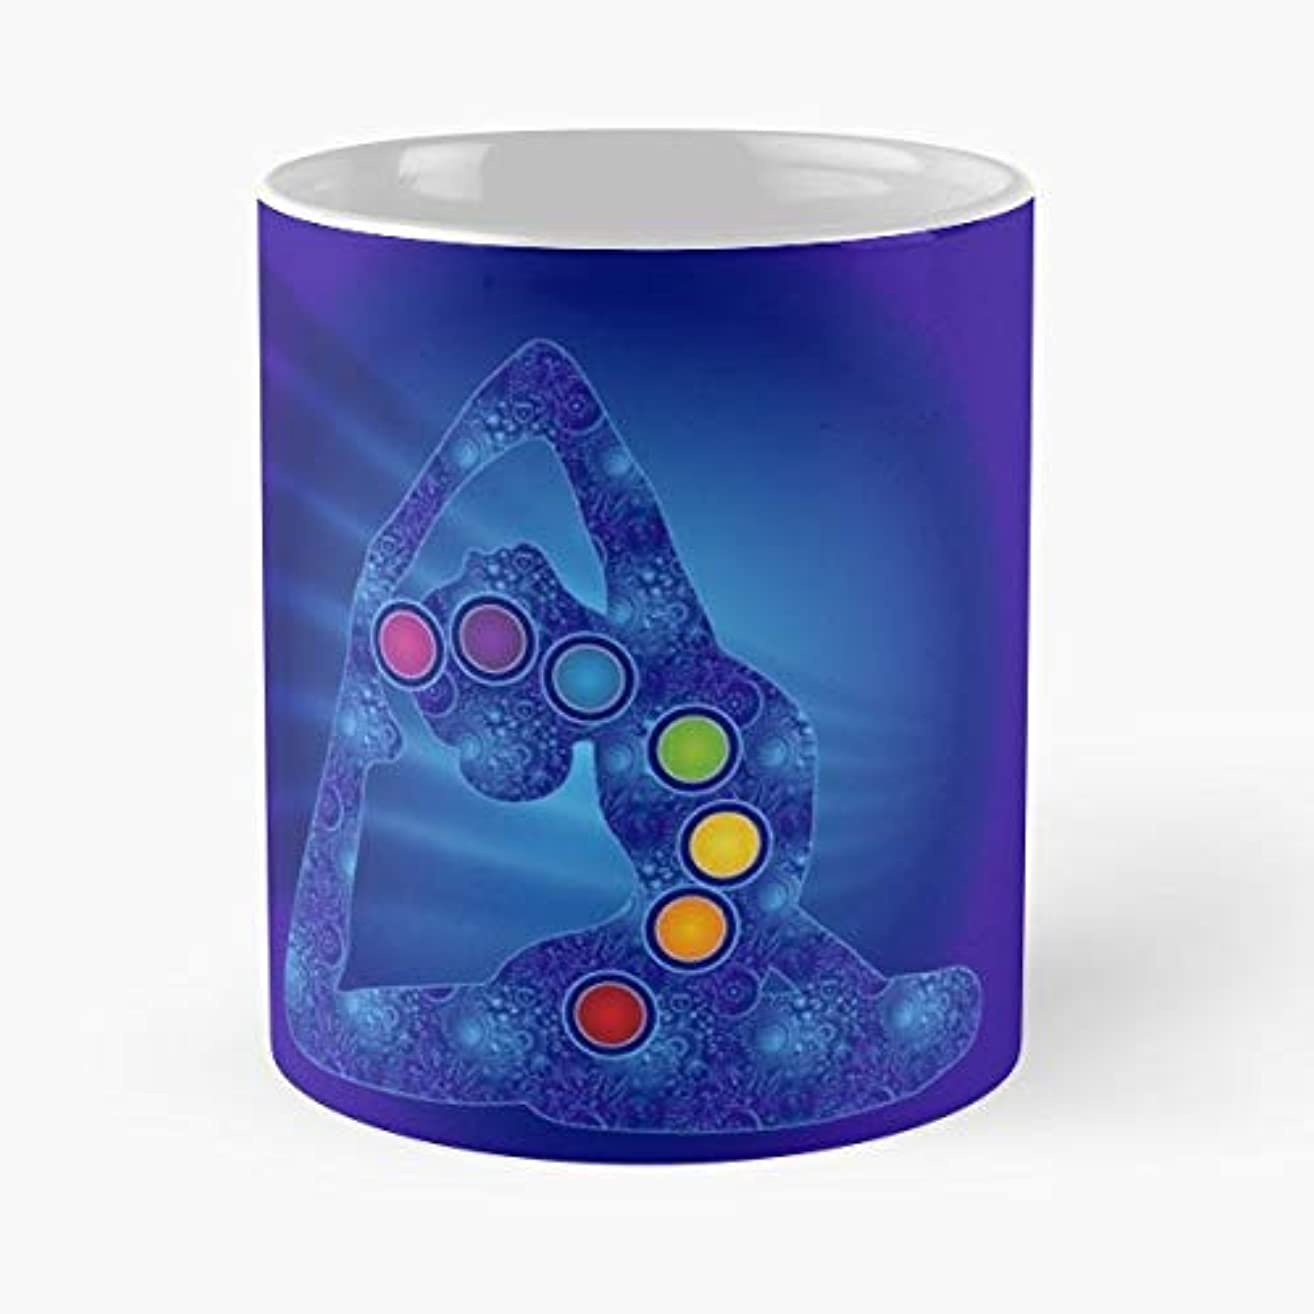 Yoga Pose Chakras 7-11 Oz Coffee Mugs Ceramic The Best Gift For Holidays, Item Use Daily